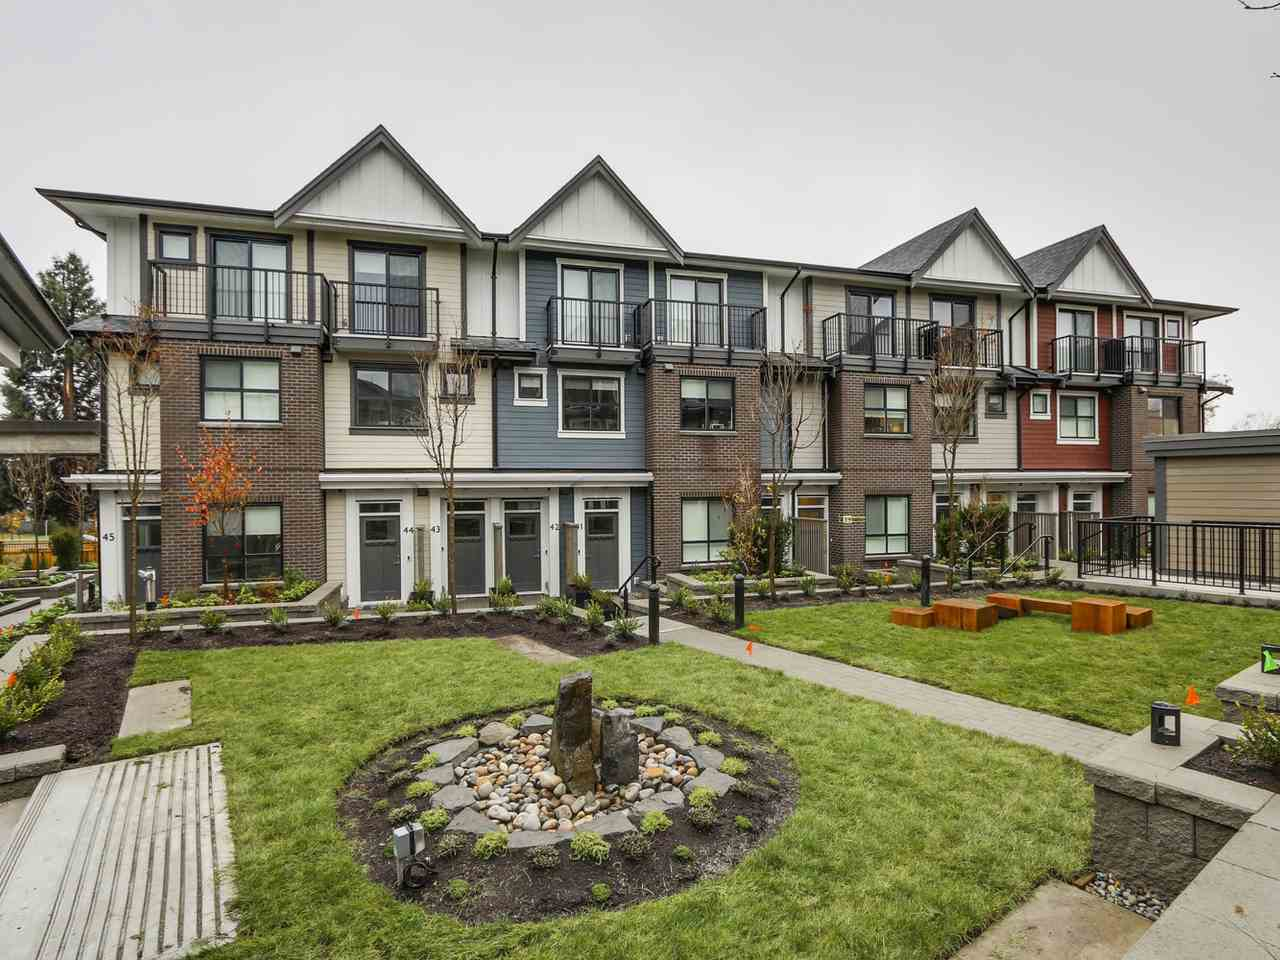 Main Photo: TH37 7039 MACPHERSON AVENUE in Burnaby: Metrotown Townhouse for sale (Burnaby South)  : MLS® # R2127174